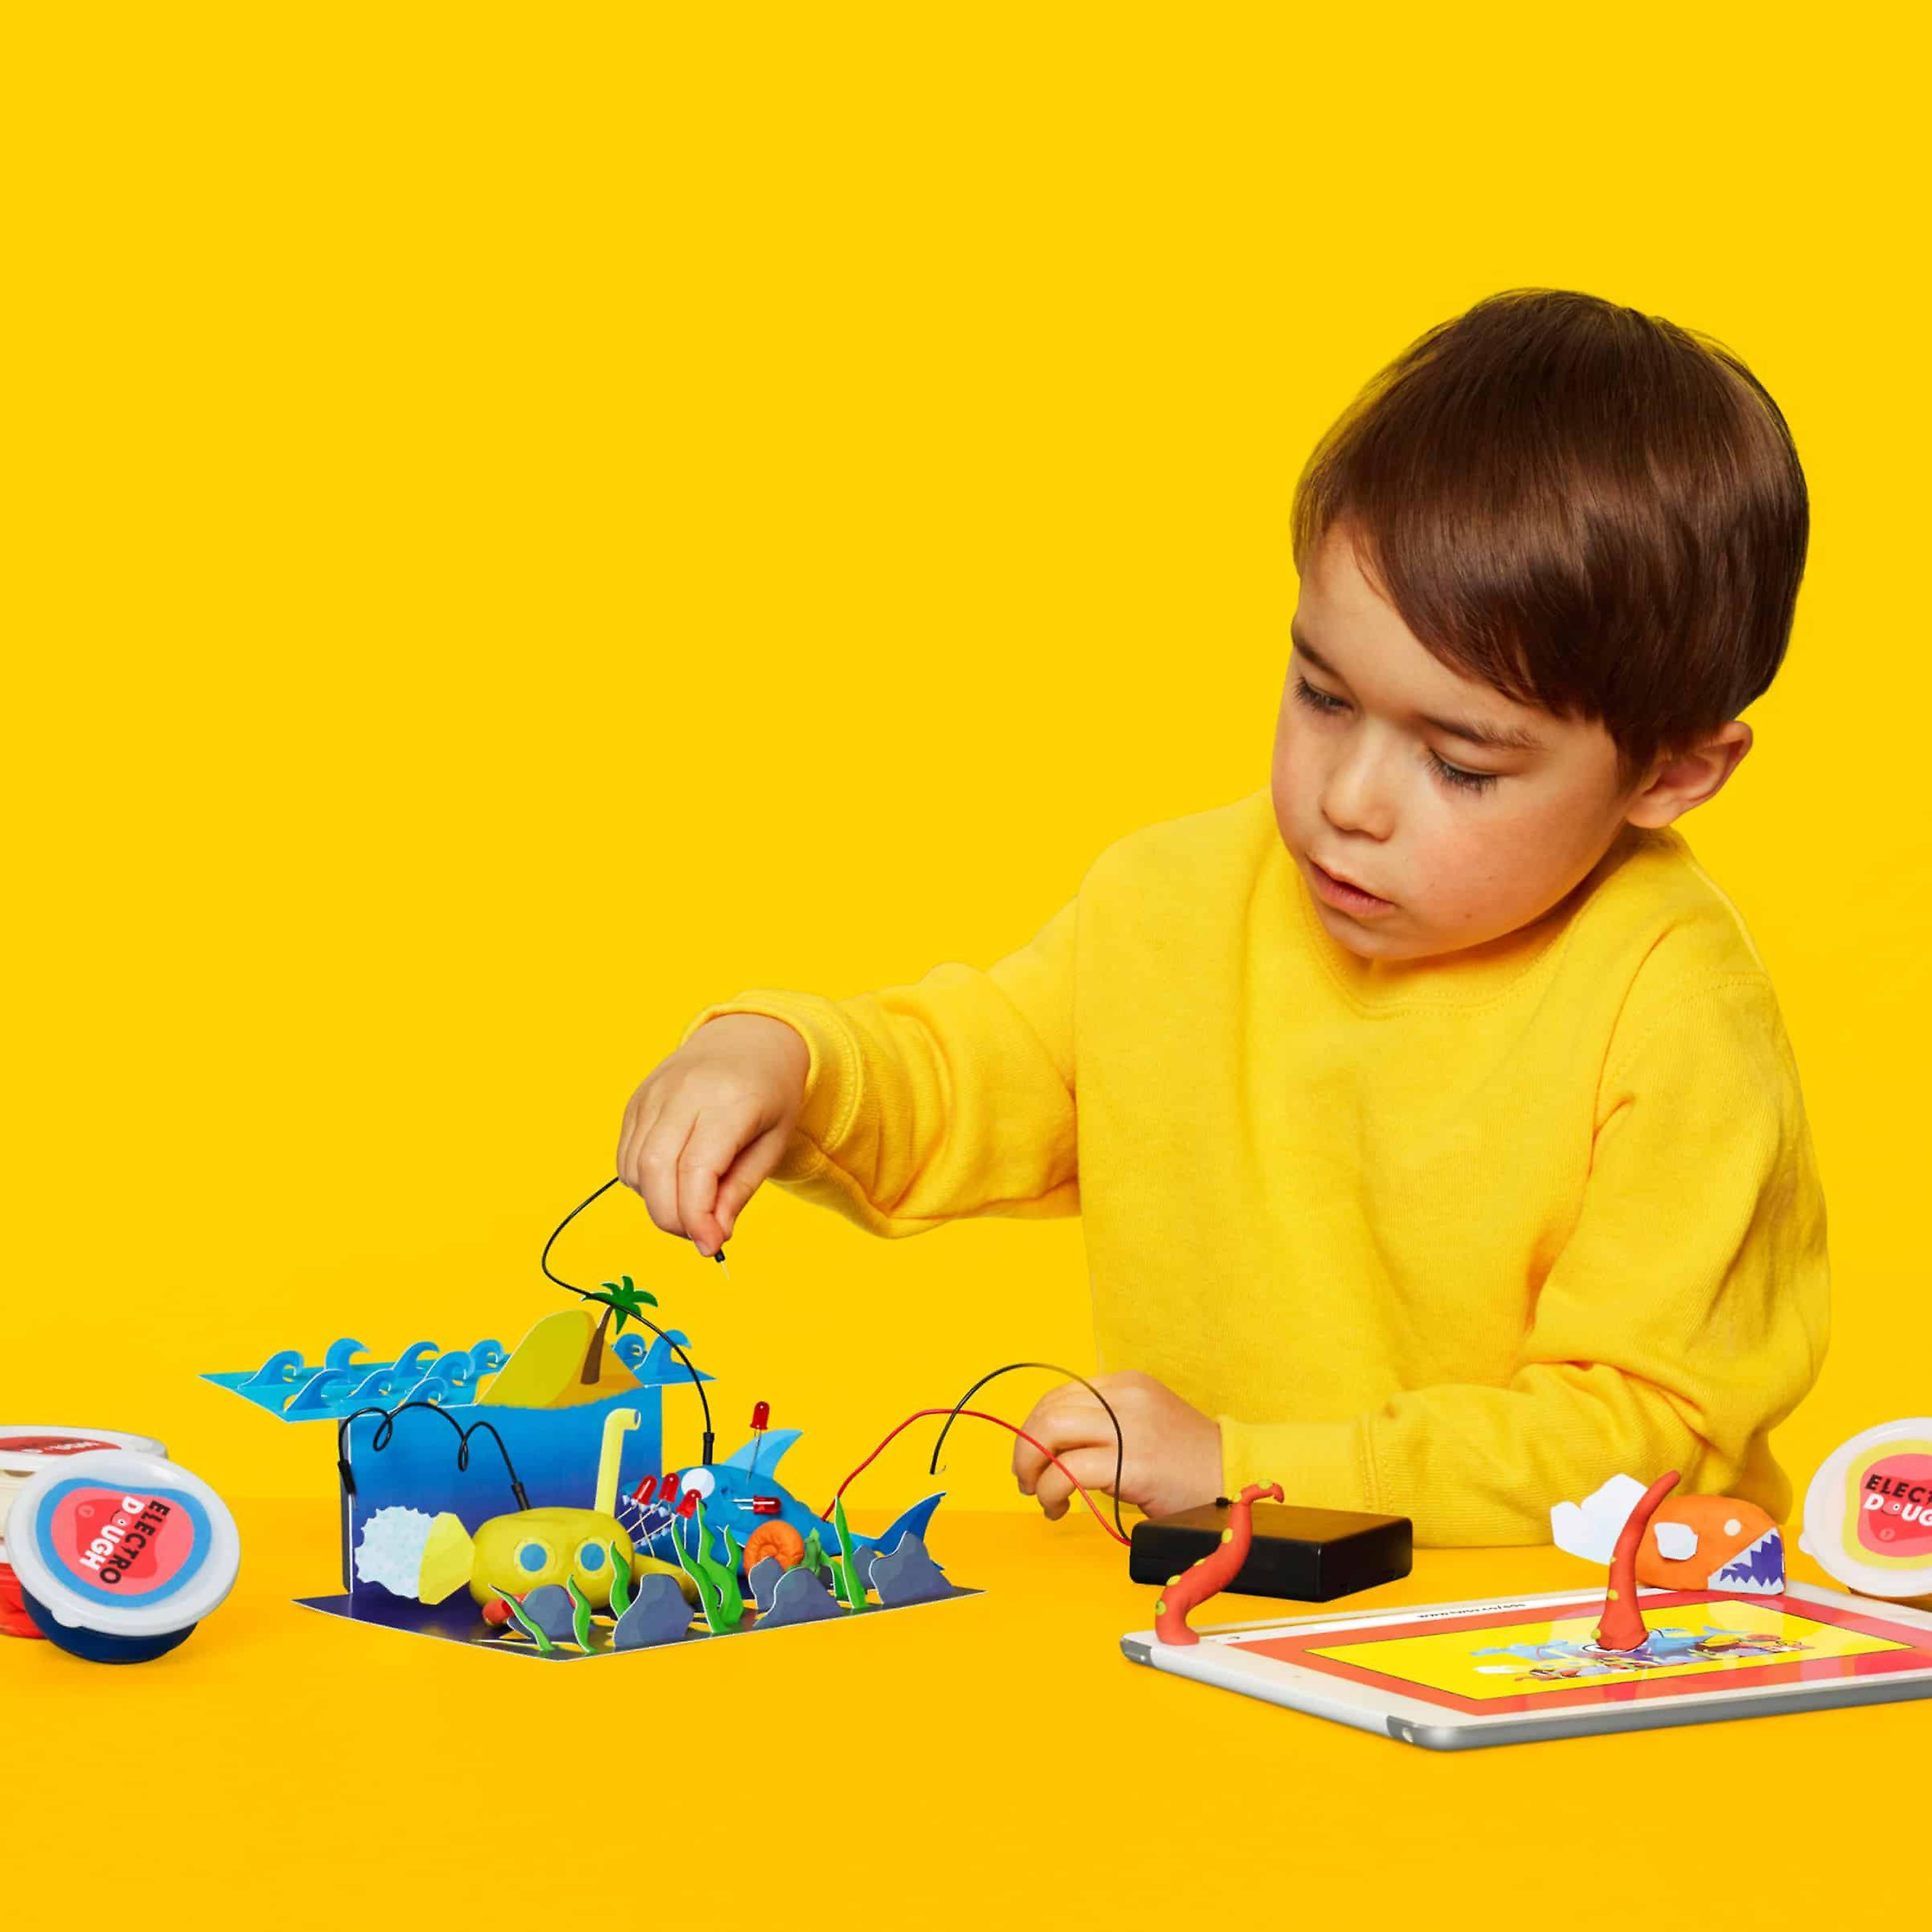 Tech Will Save Us Electro Dough Story Kit | Educational STEM Toy, Ages 4 and up